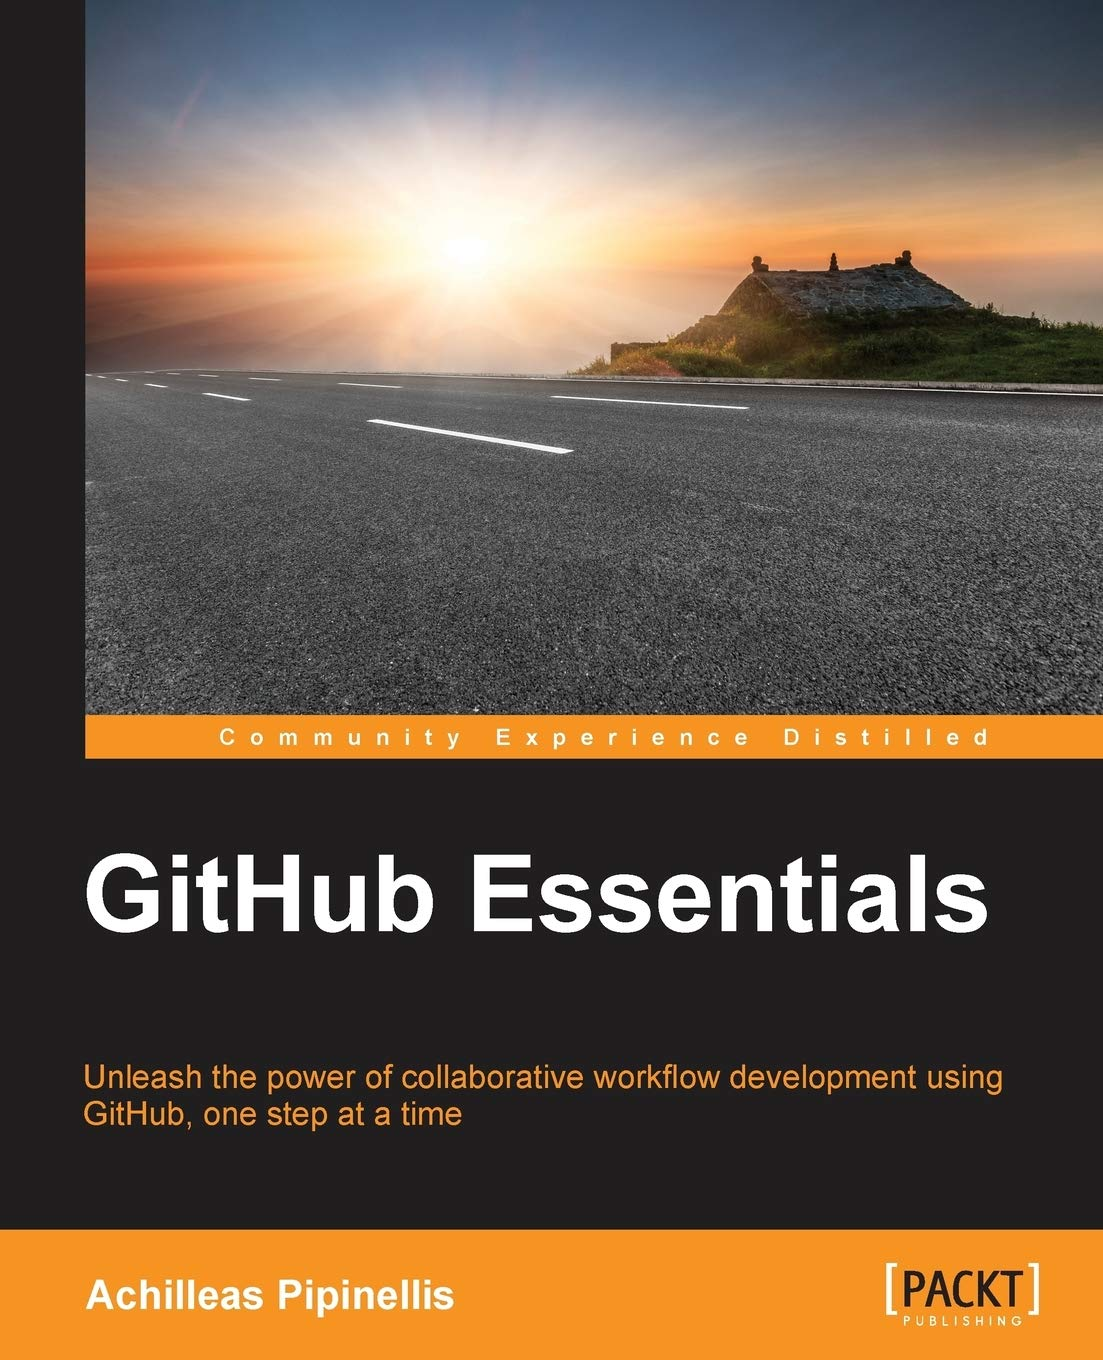 GitHub Essentials by Achilleas Pipinellis